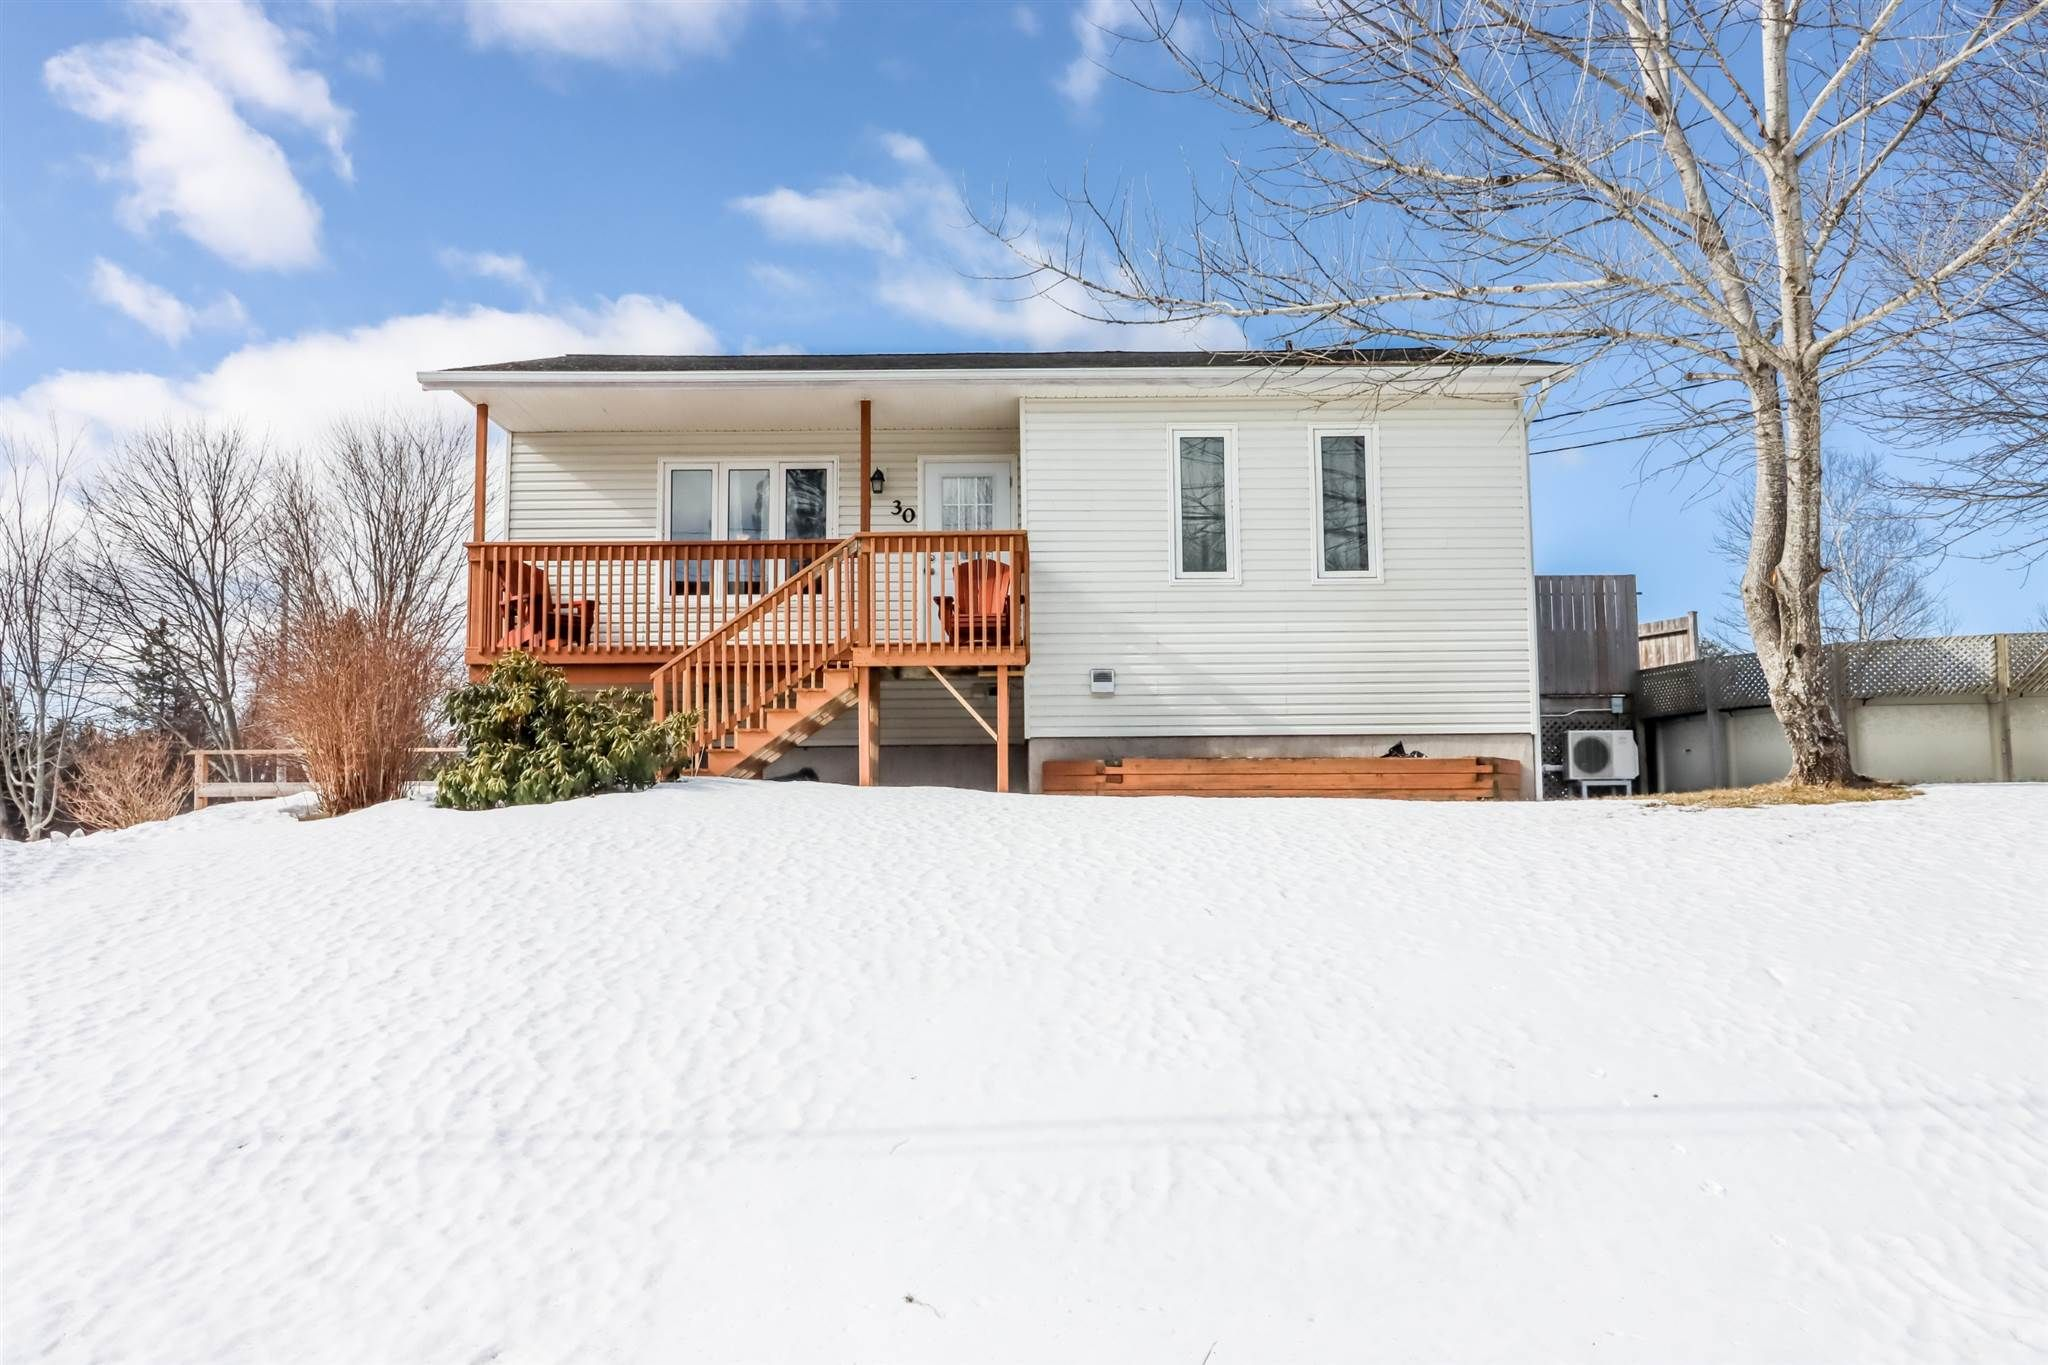 Main Photo: 30 Cherry Lane in Kingston: 404-Kings County Multi-Family for sale (Annapolis Valley)  : MLS®# 202104094